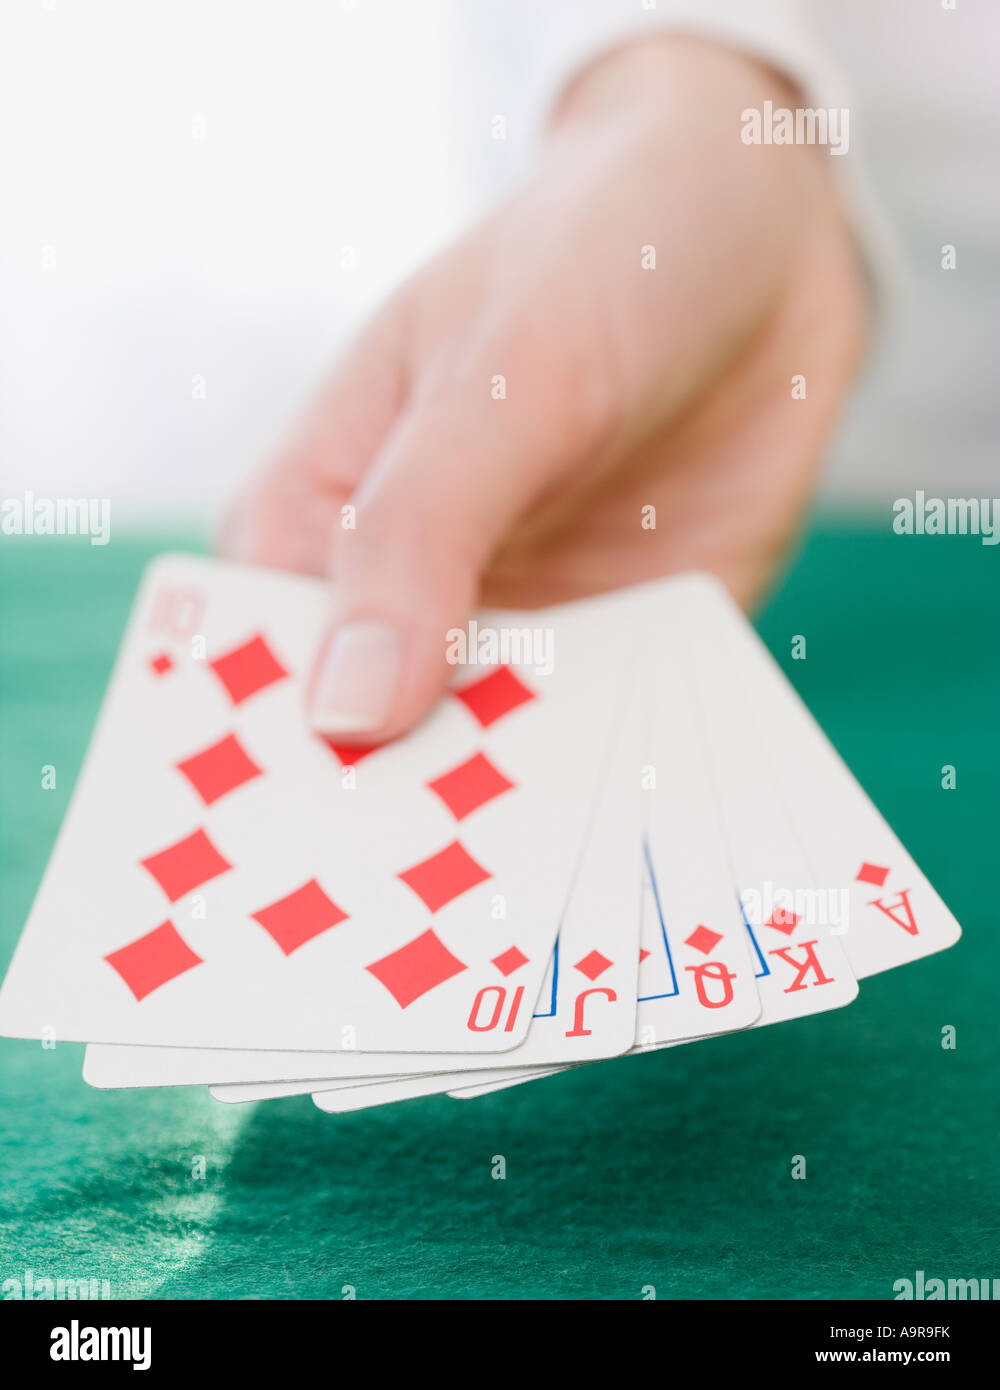 Woman holding straight flush playing cards - Stock Image